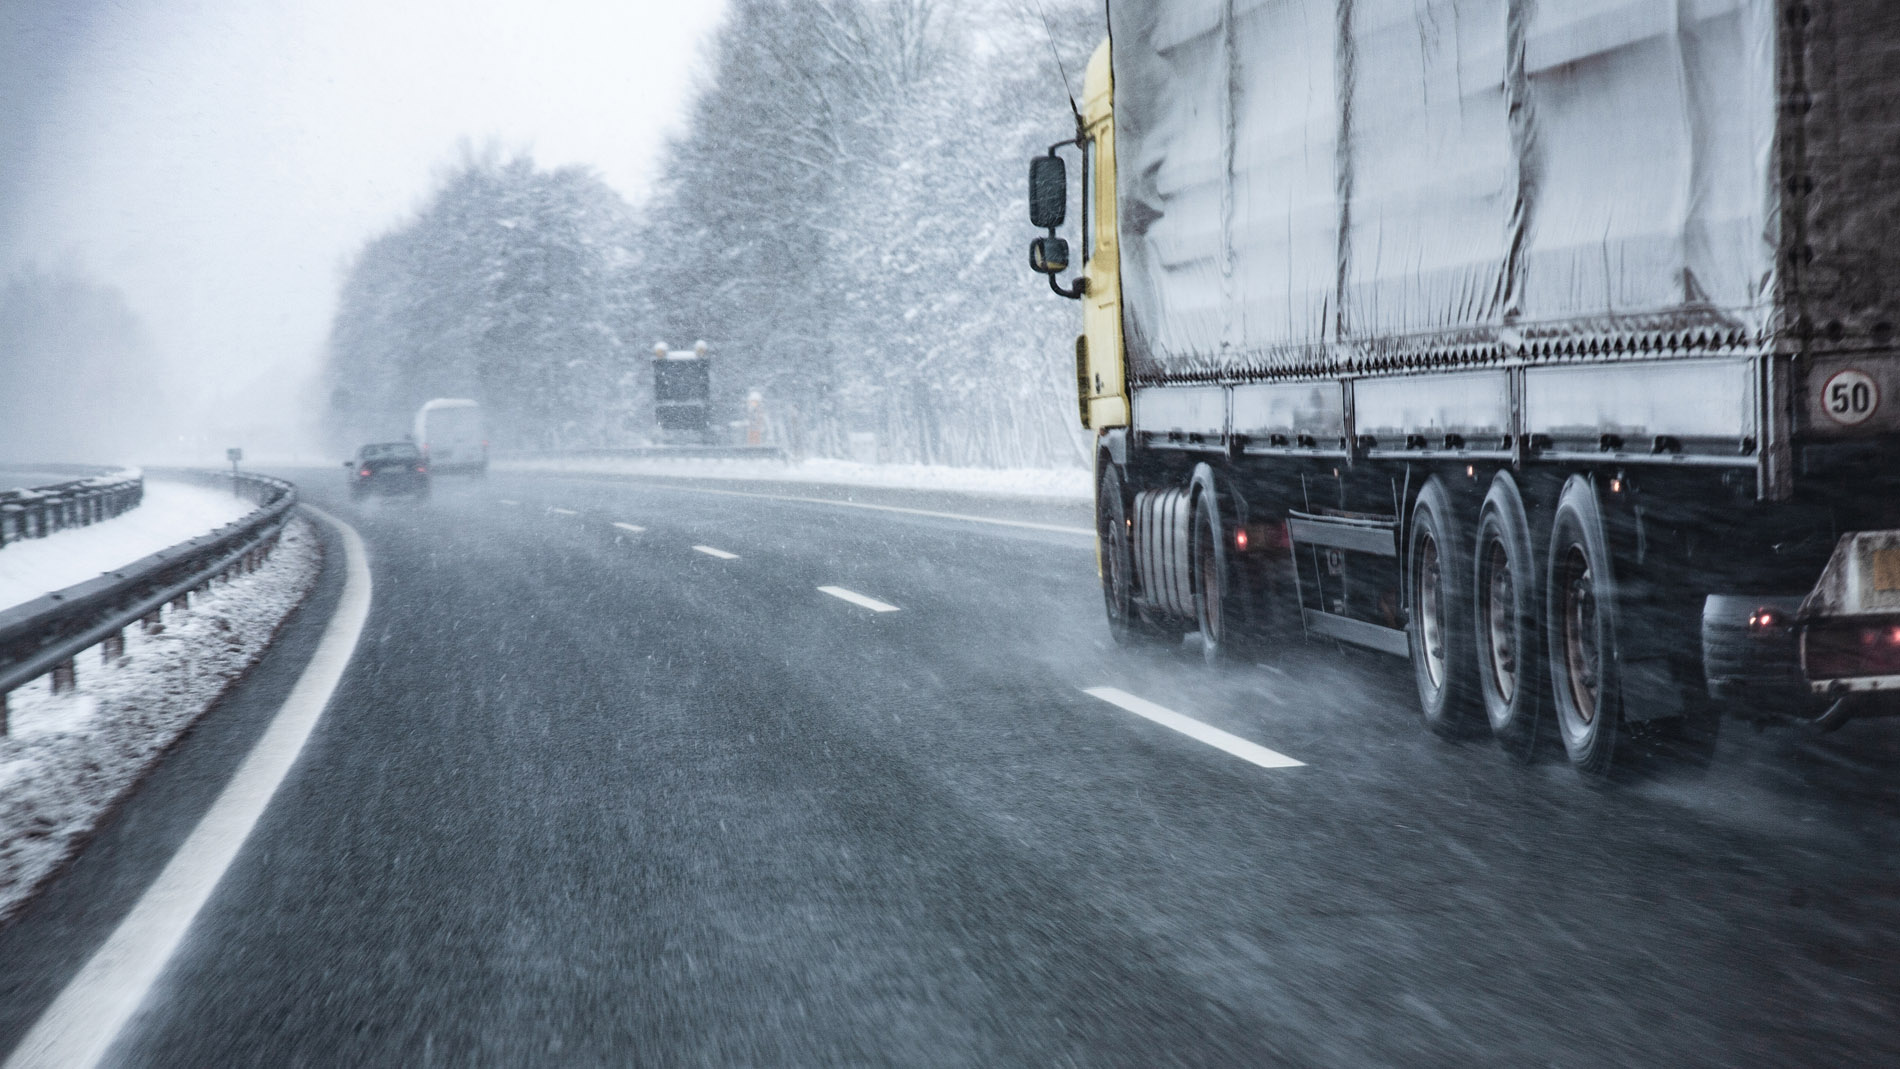 truck driving in snowy treacherous road conditions